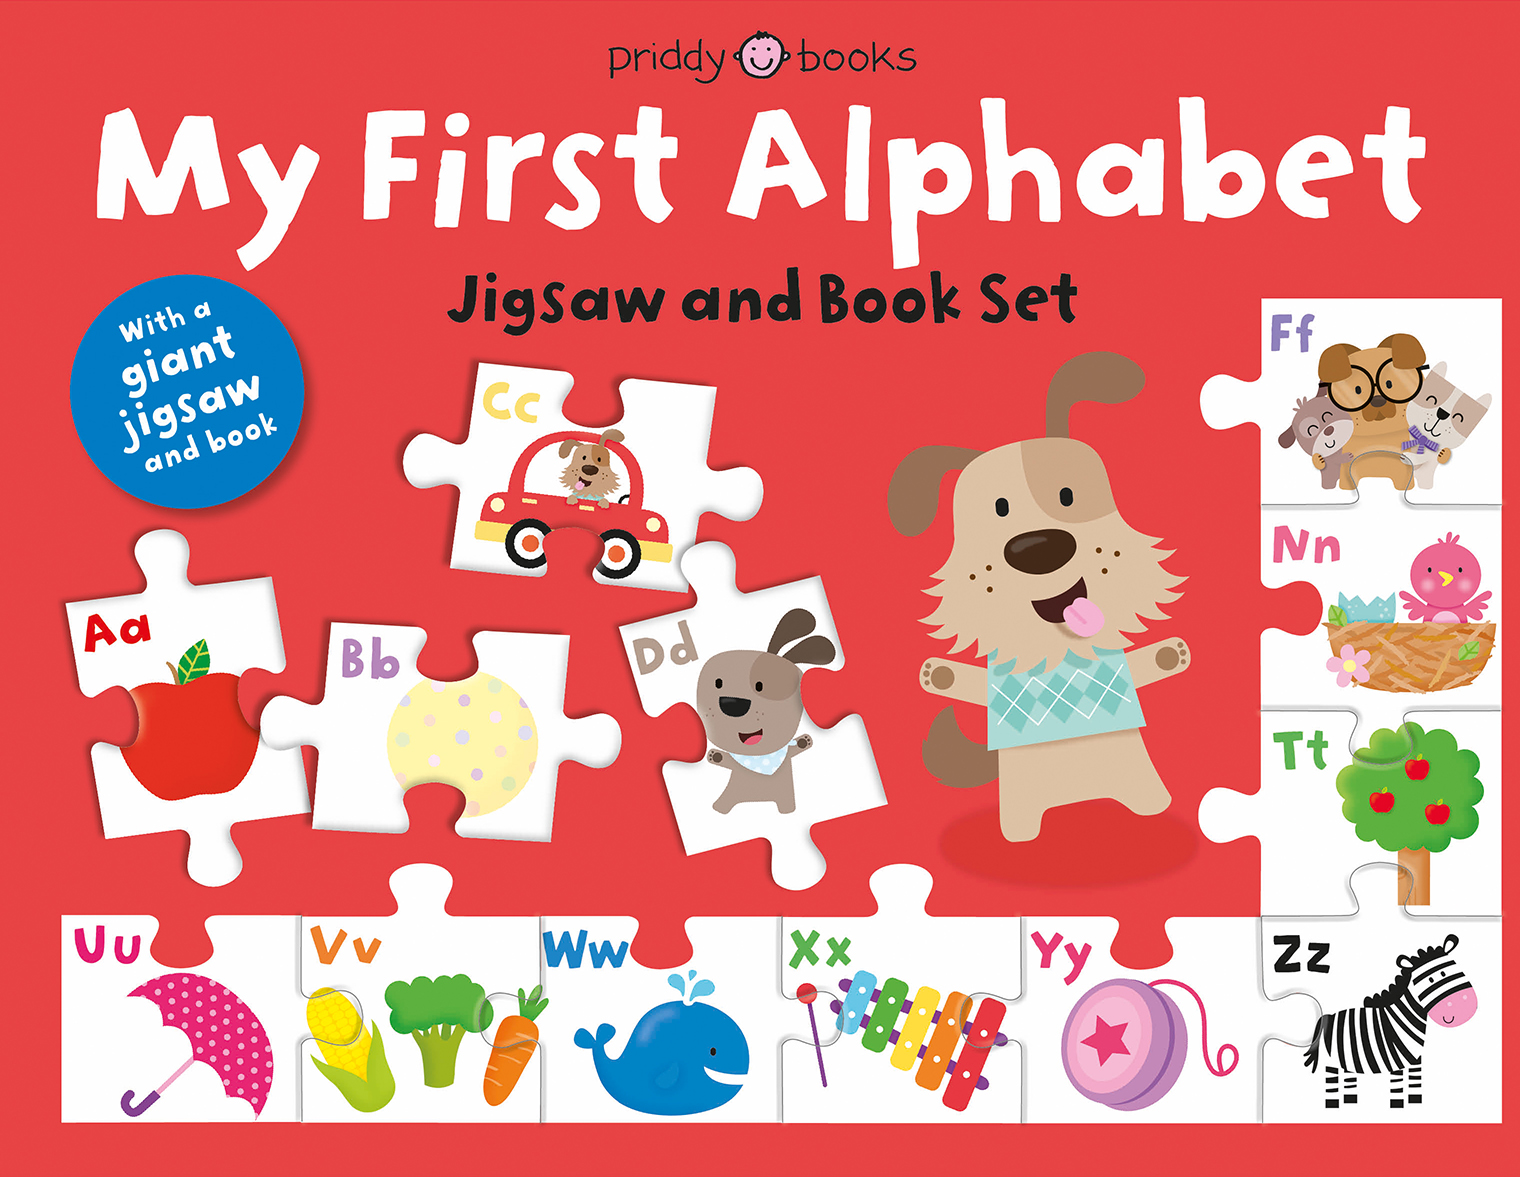 Tagged: acetate book, baby's day, colors, farm, house, lift-the-flap, slide  and find, spotting book, truck